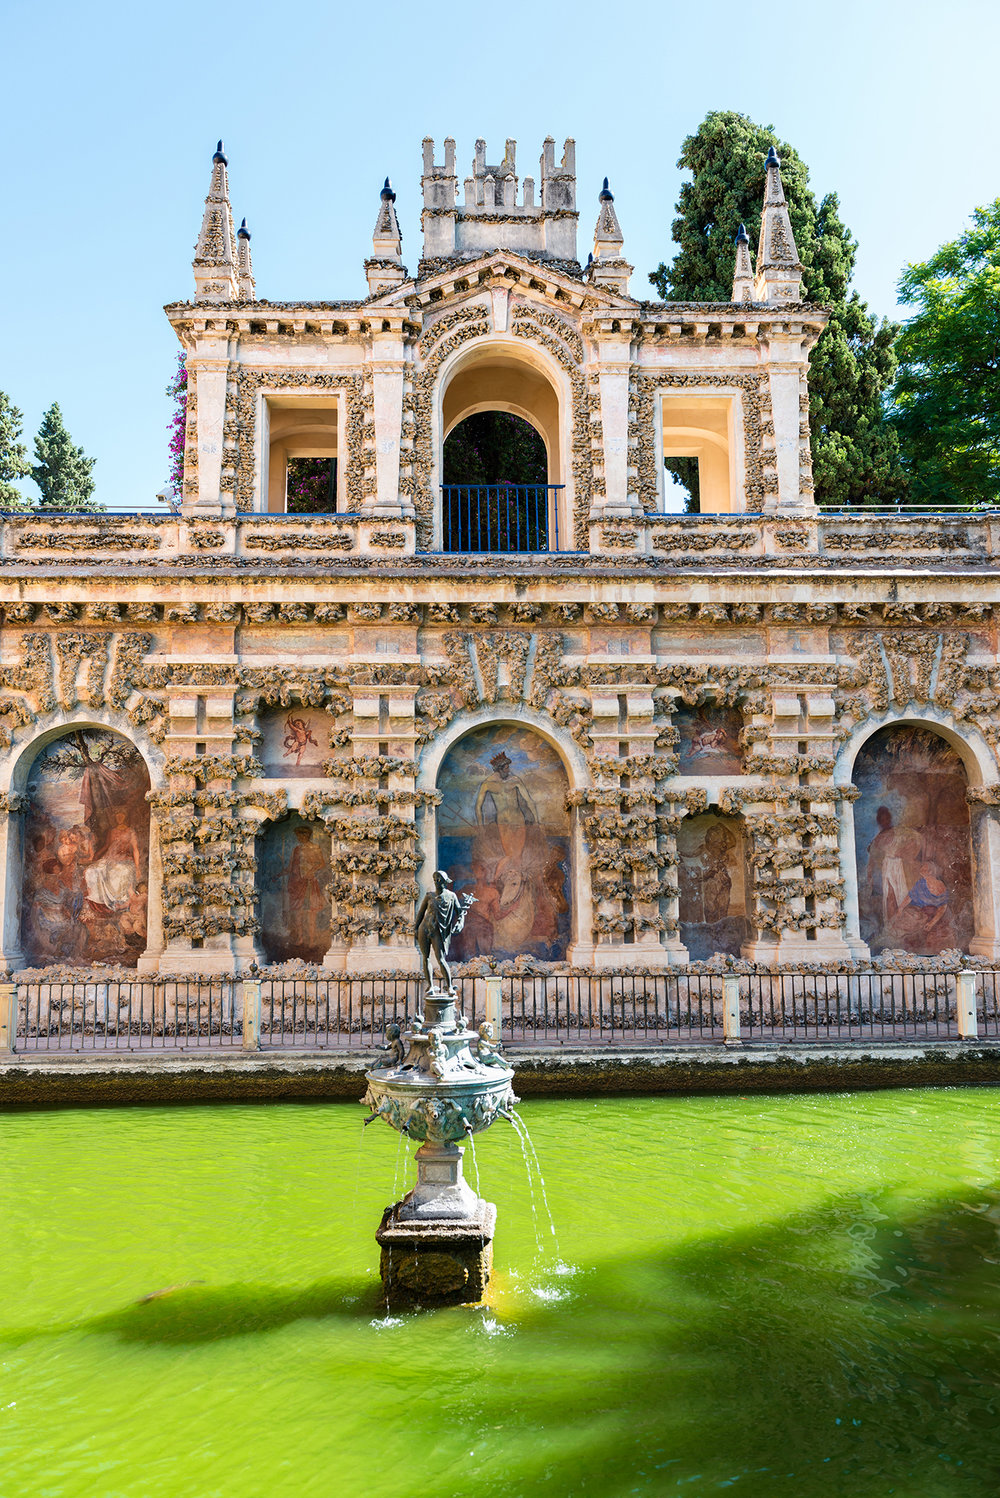 Gardens and fountain in the Alcazar of Seville